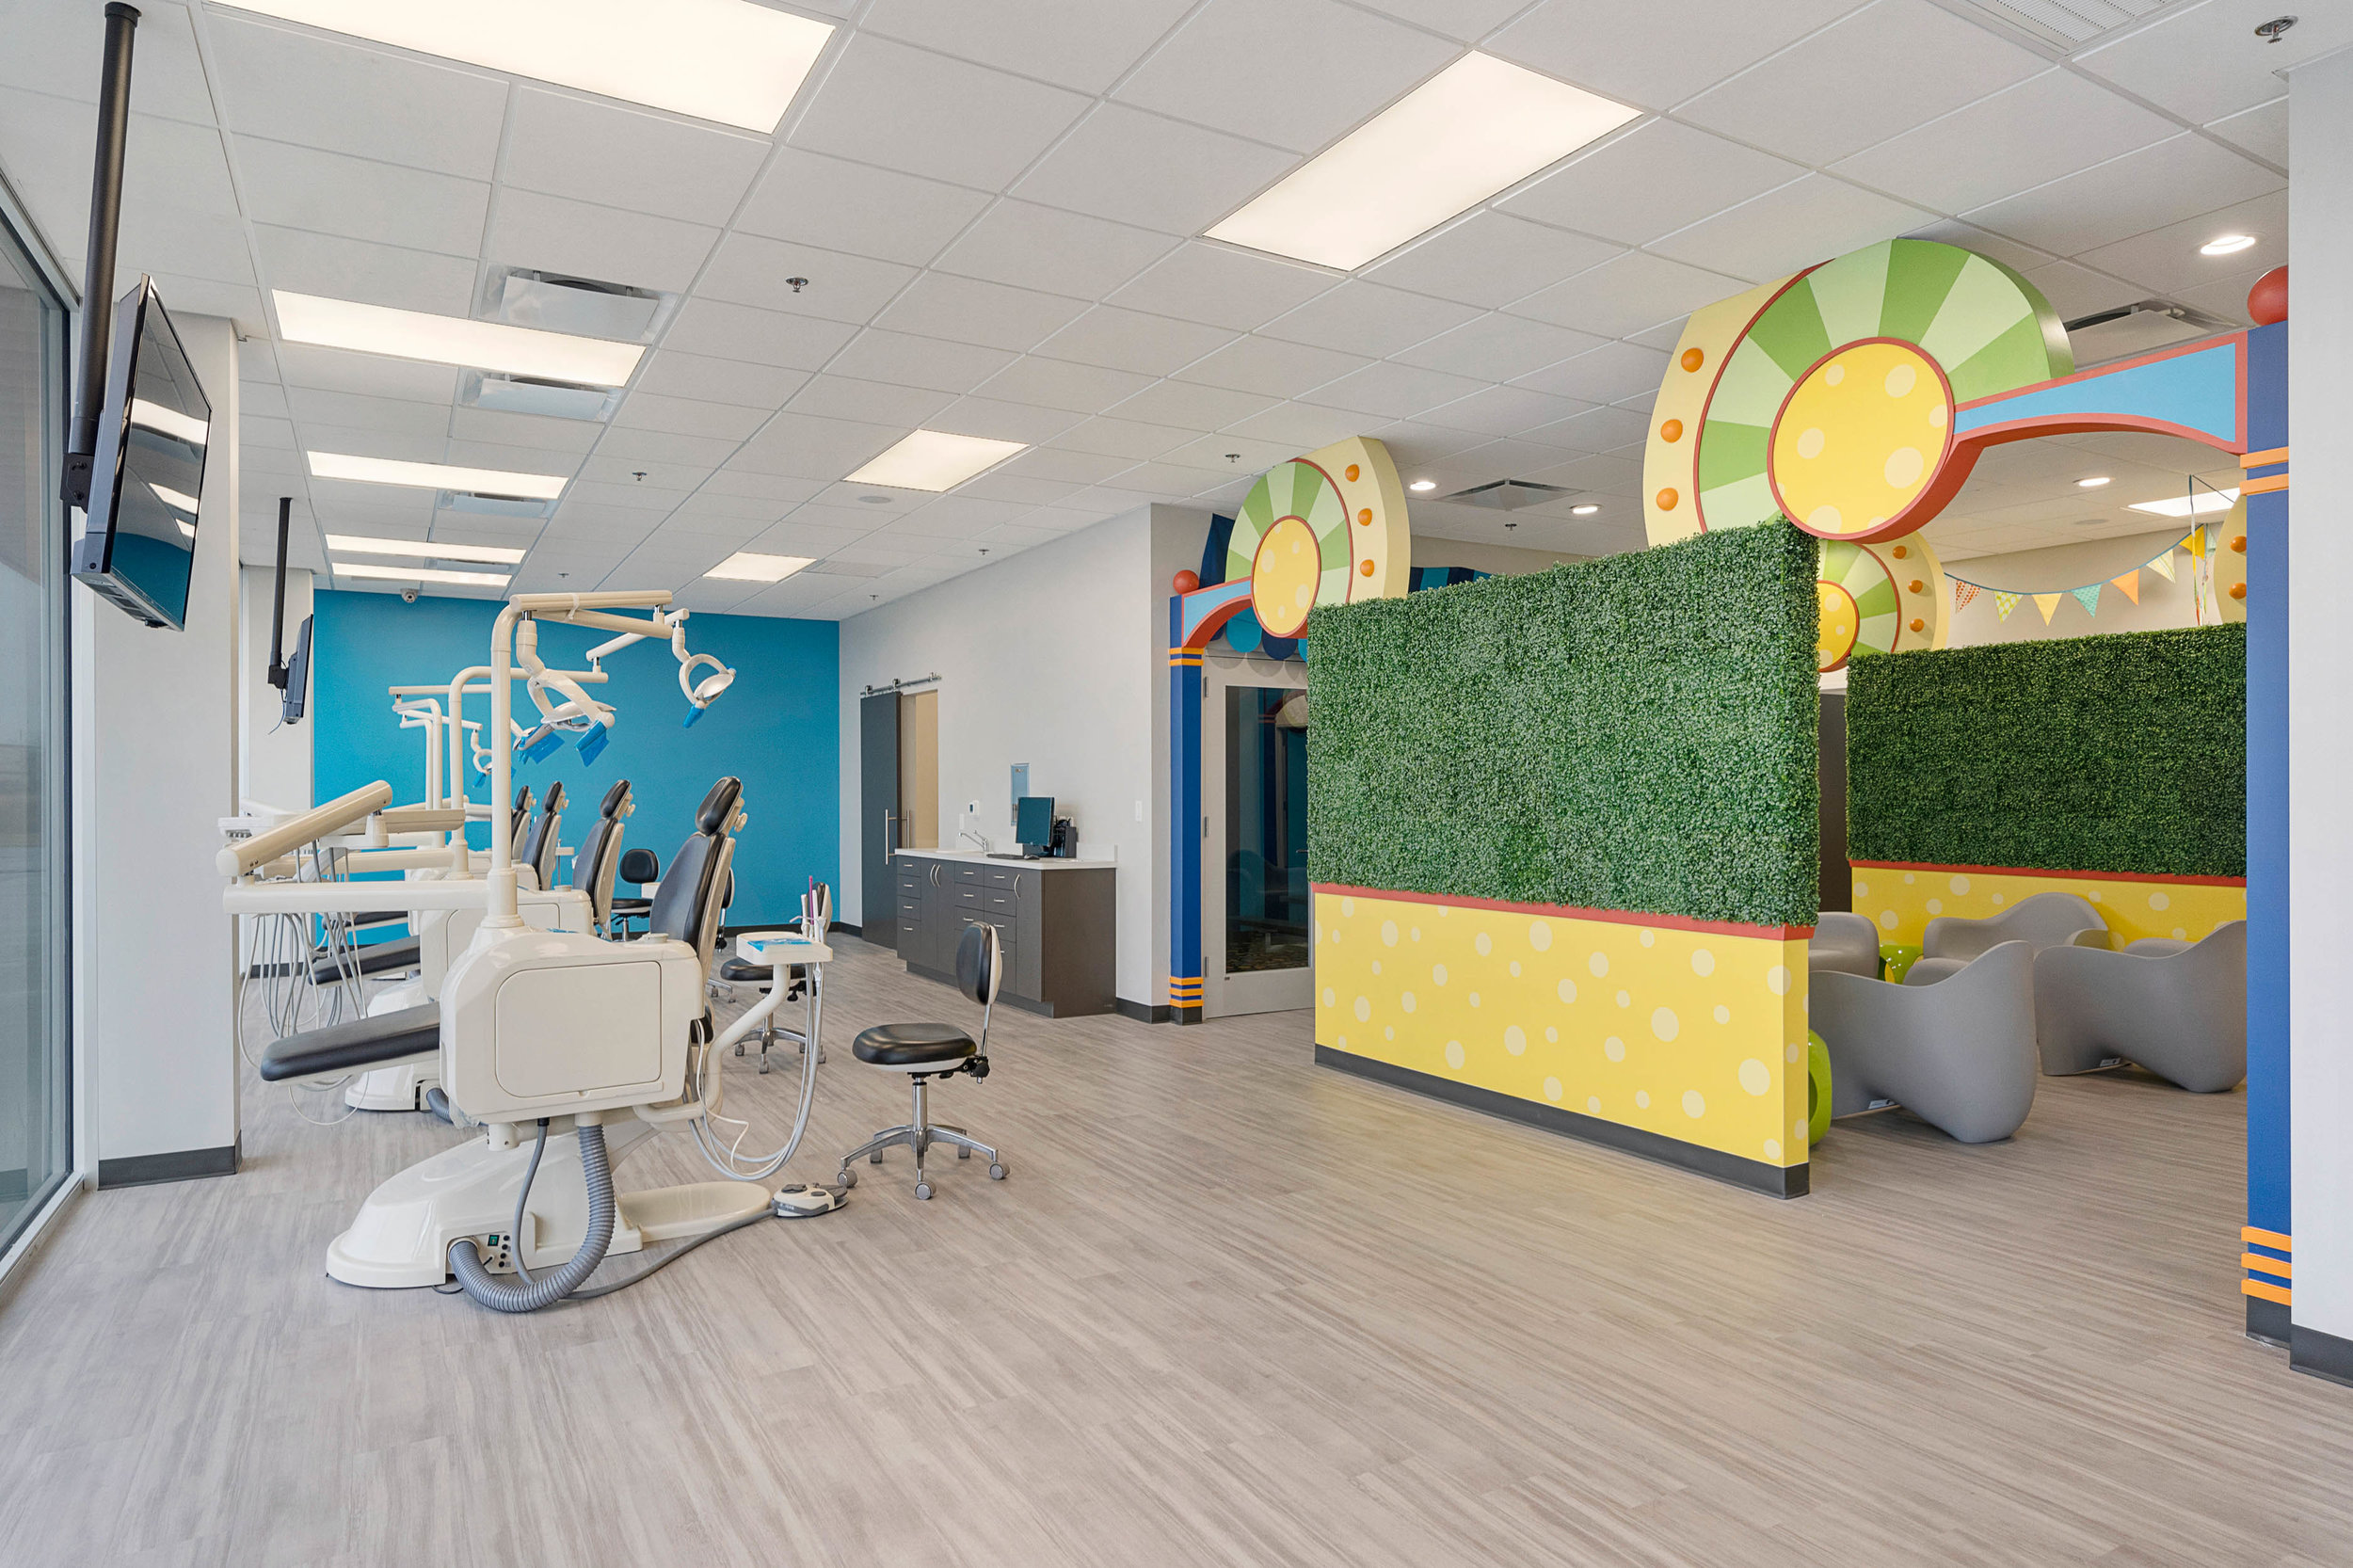 PEDIATRIC DENTIST BAY HOUSTON TEXAS 77022.jpg